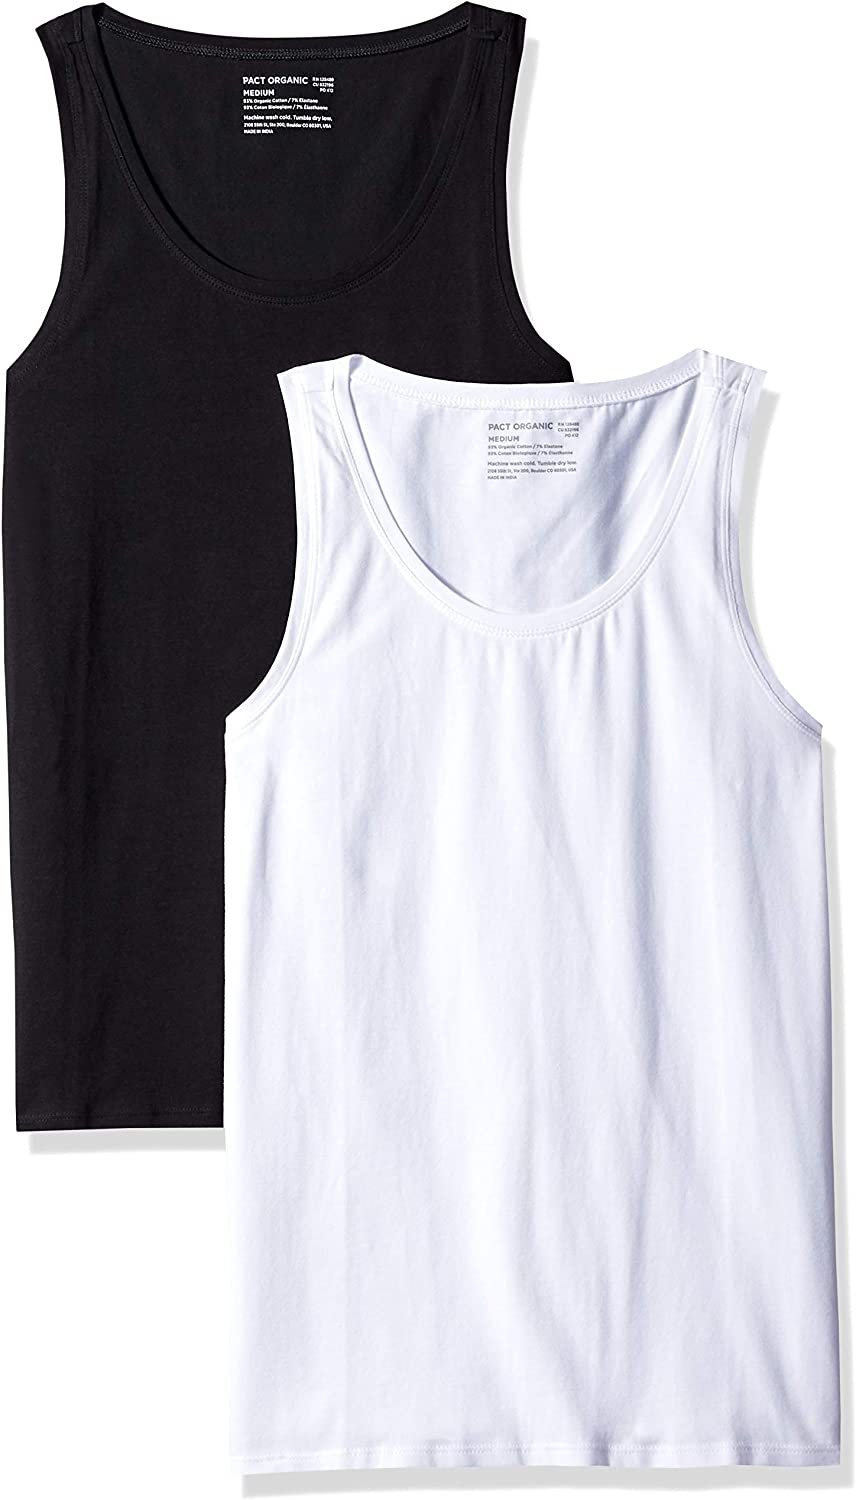 Scoop Neckline Made with Organic Cotton PACT Womens Stretch-Fit Tank Top 2-Pack Black//White